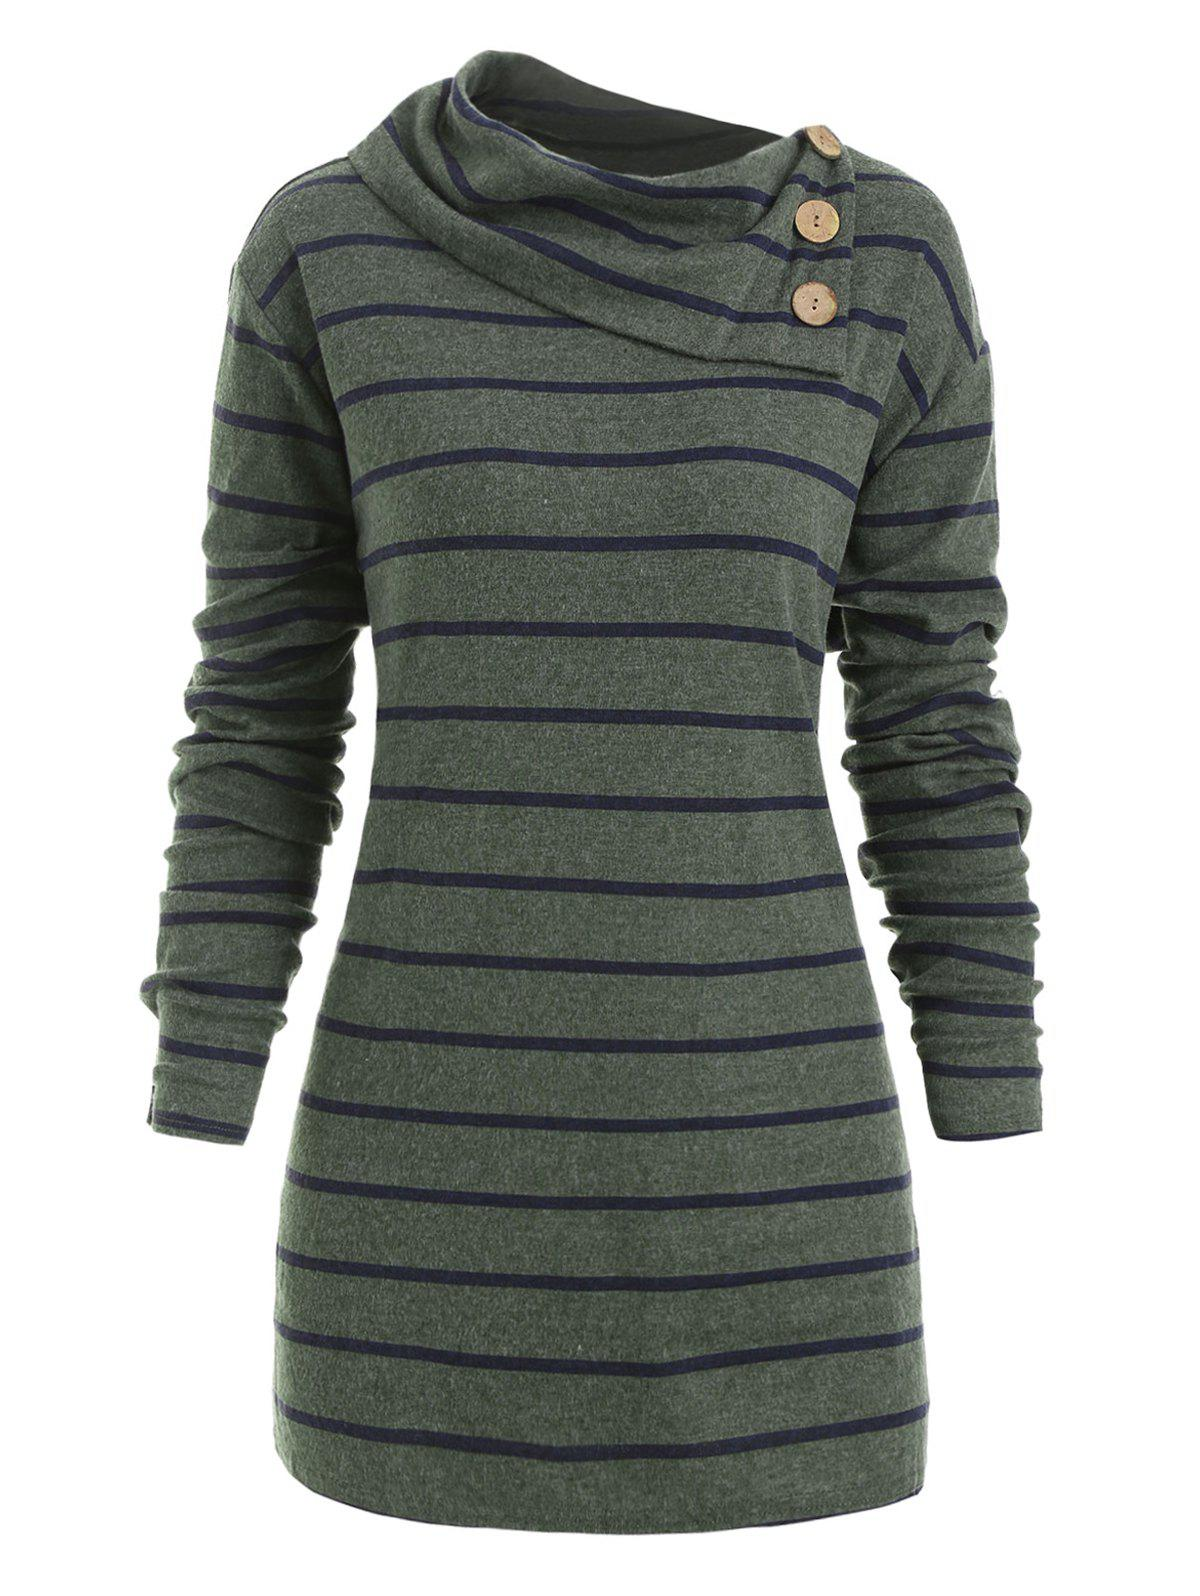 Sale Plus Size Striped Elbow Patch Tunic Knitwear